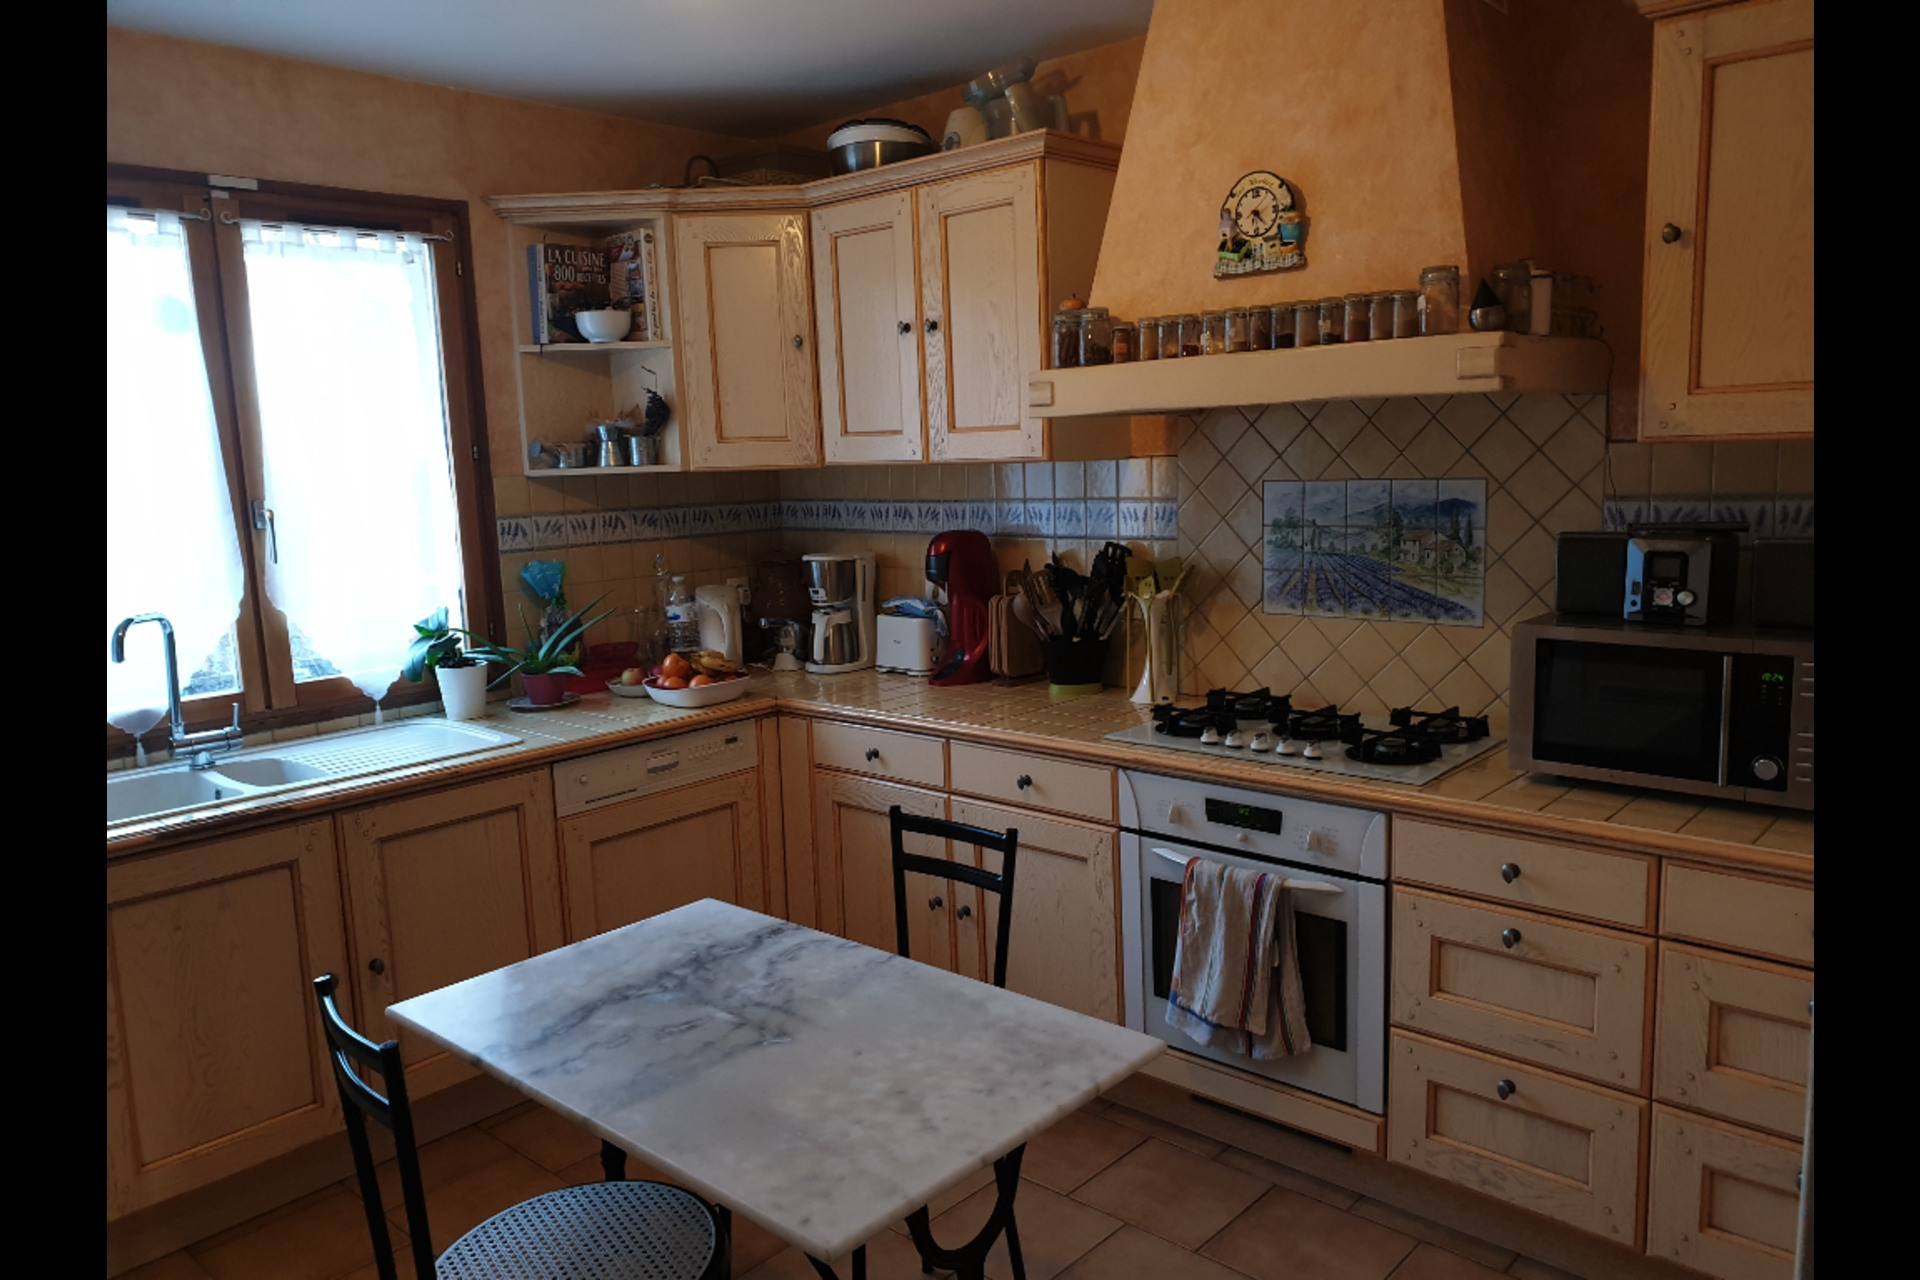 image 4 - House For sale poissy - 5 rooms